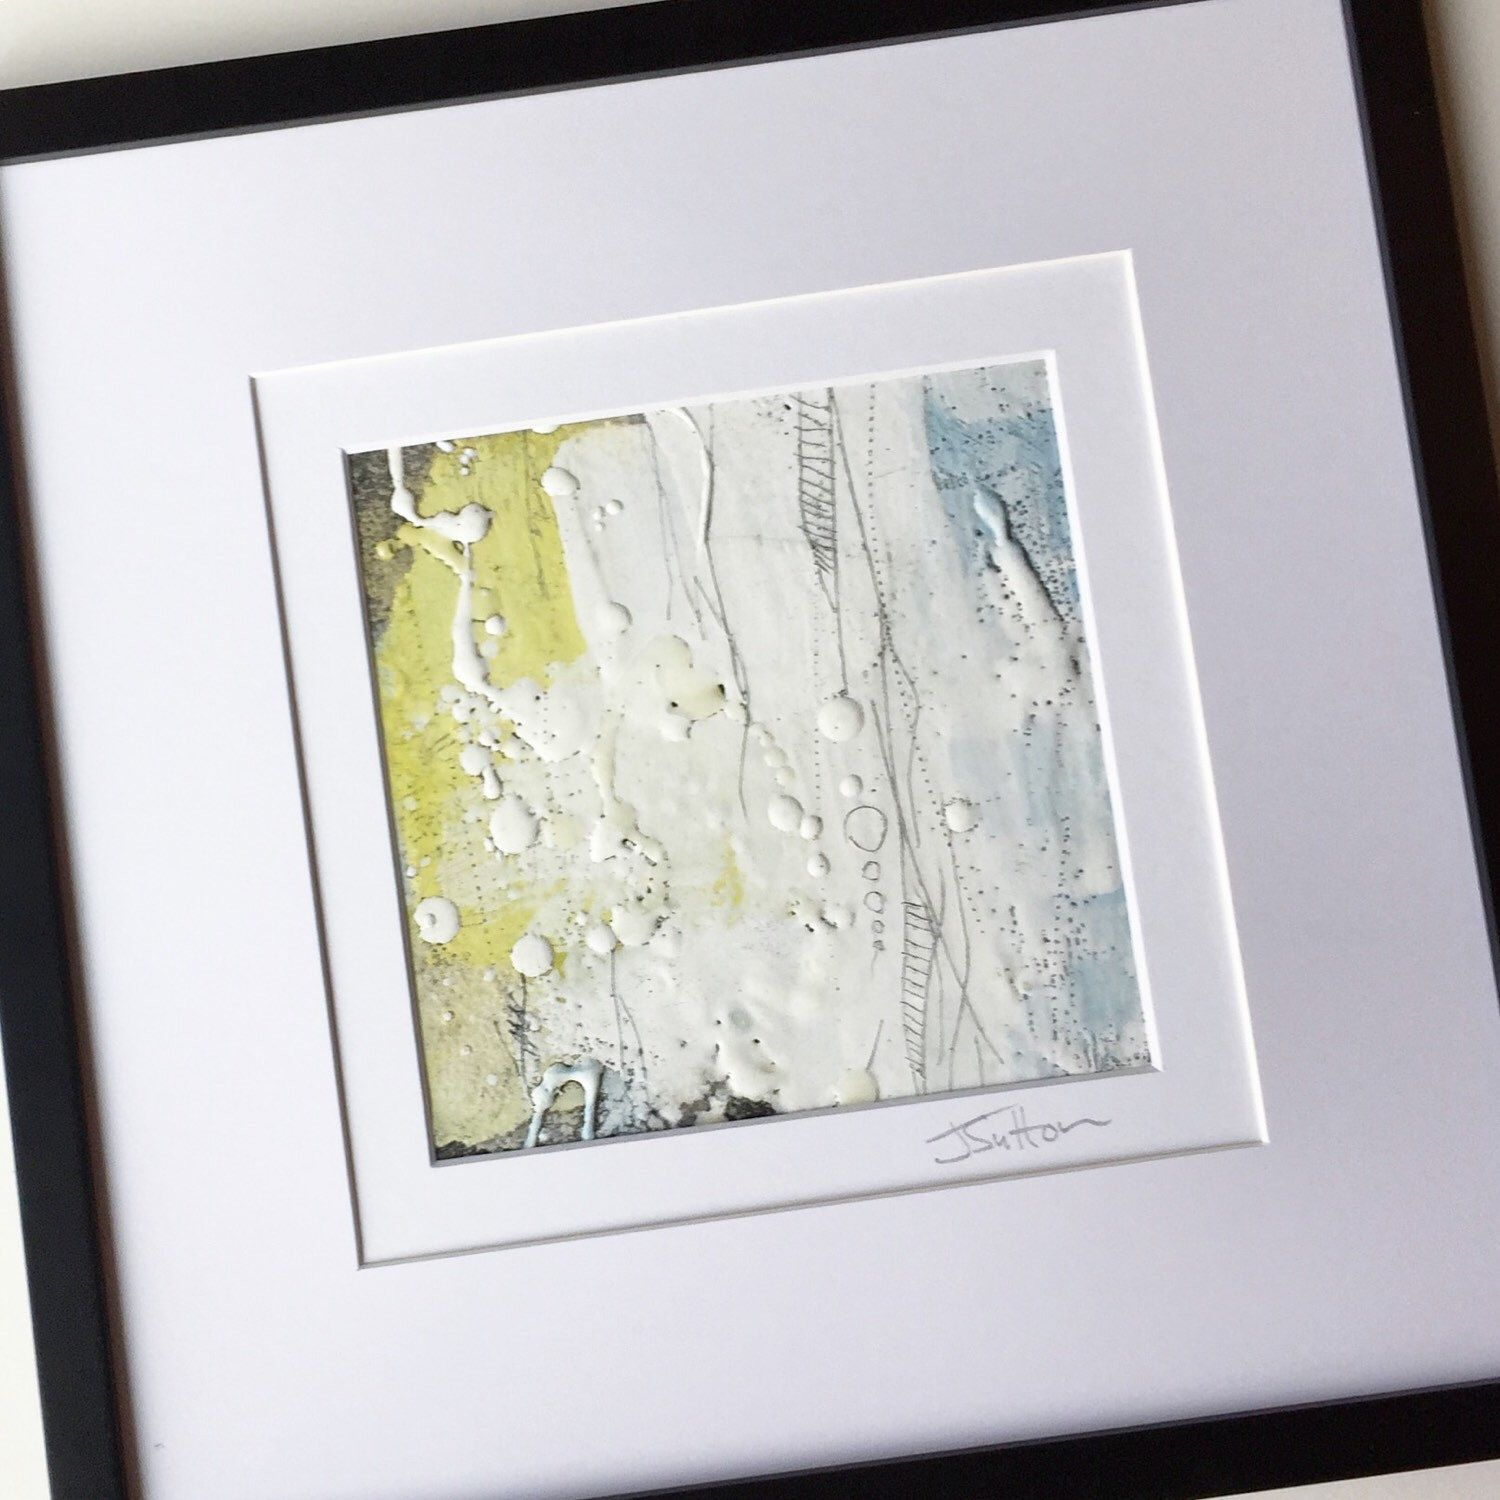 """I just got this little beauty back from my solo art show. It's a framed 6x6"""" abstract encaustic on paper. #style #visualarts #abstractart jsuttonstudio.com"""